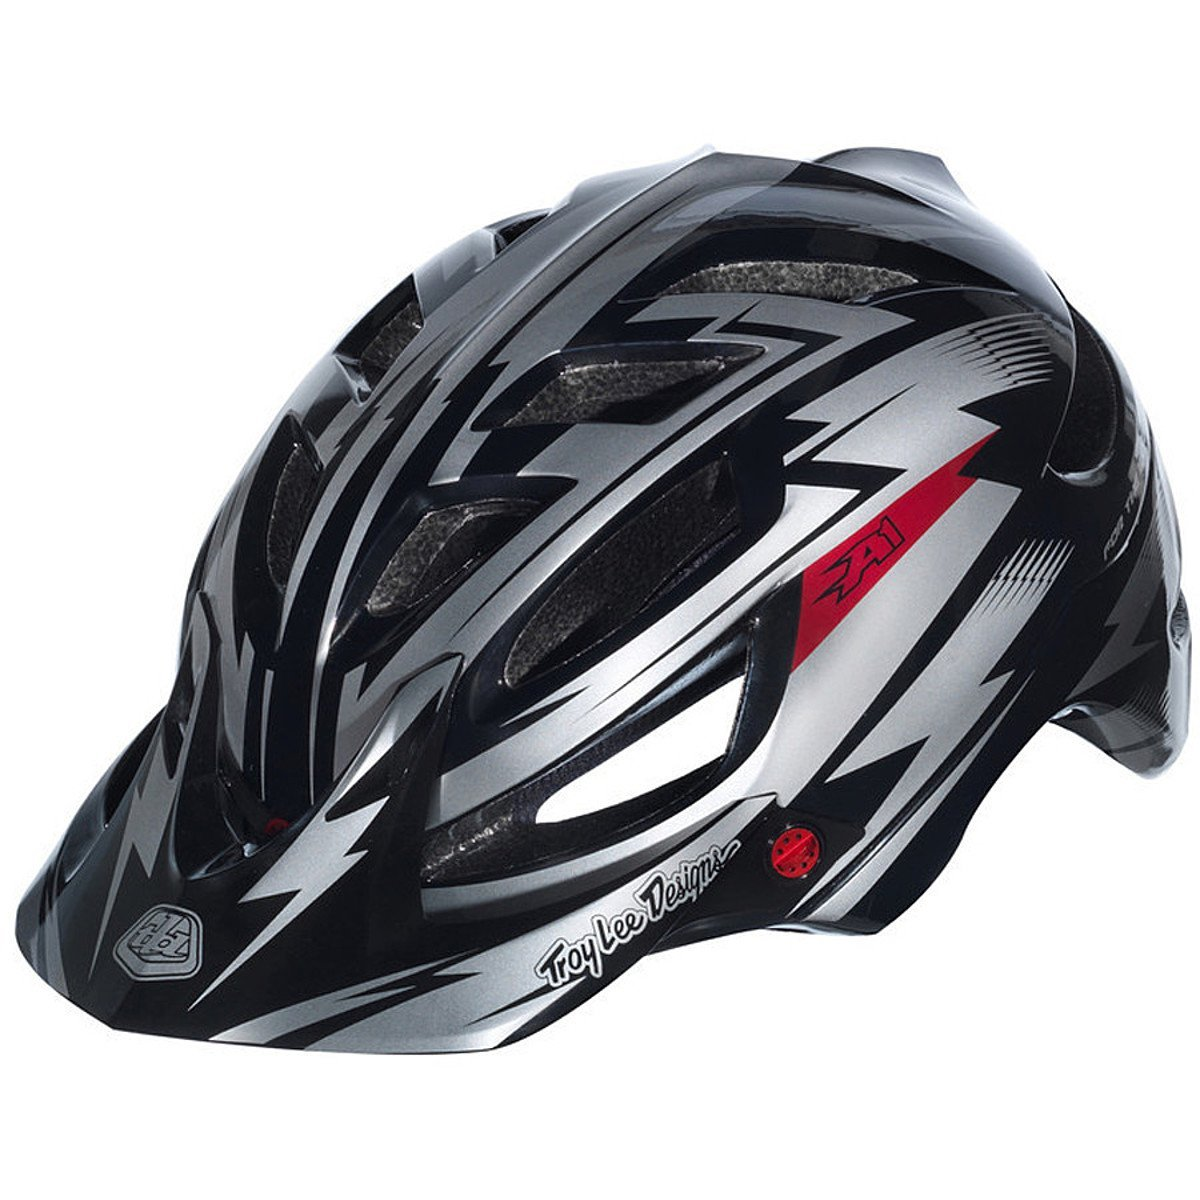 Black Troy Lee Designs Bicycle Helmets